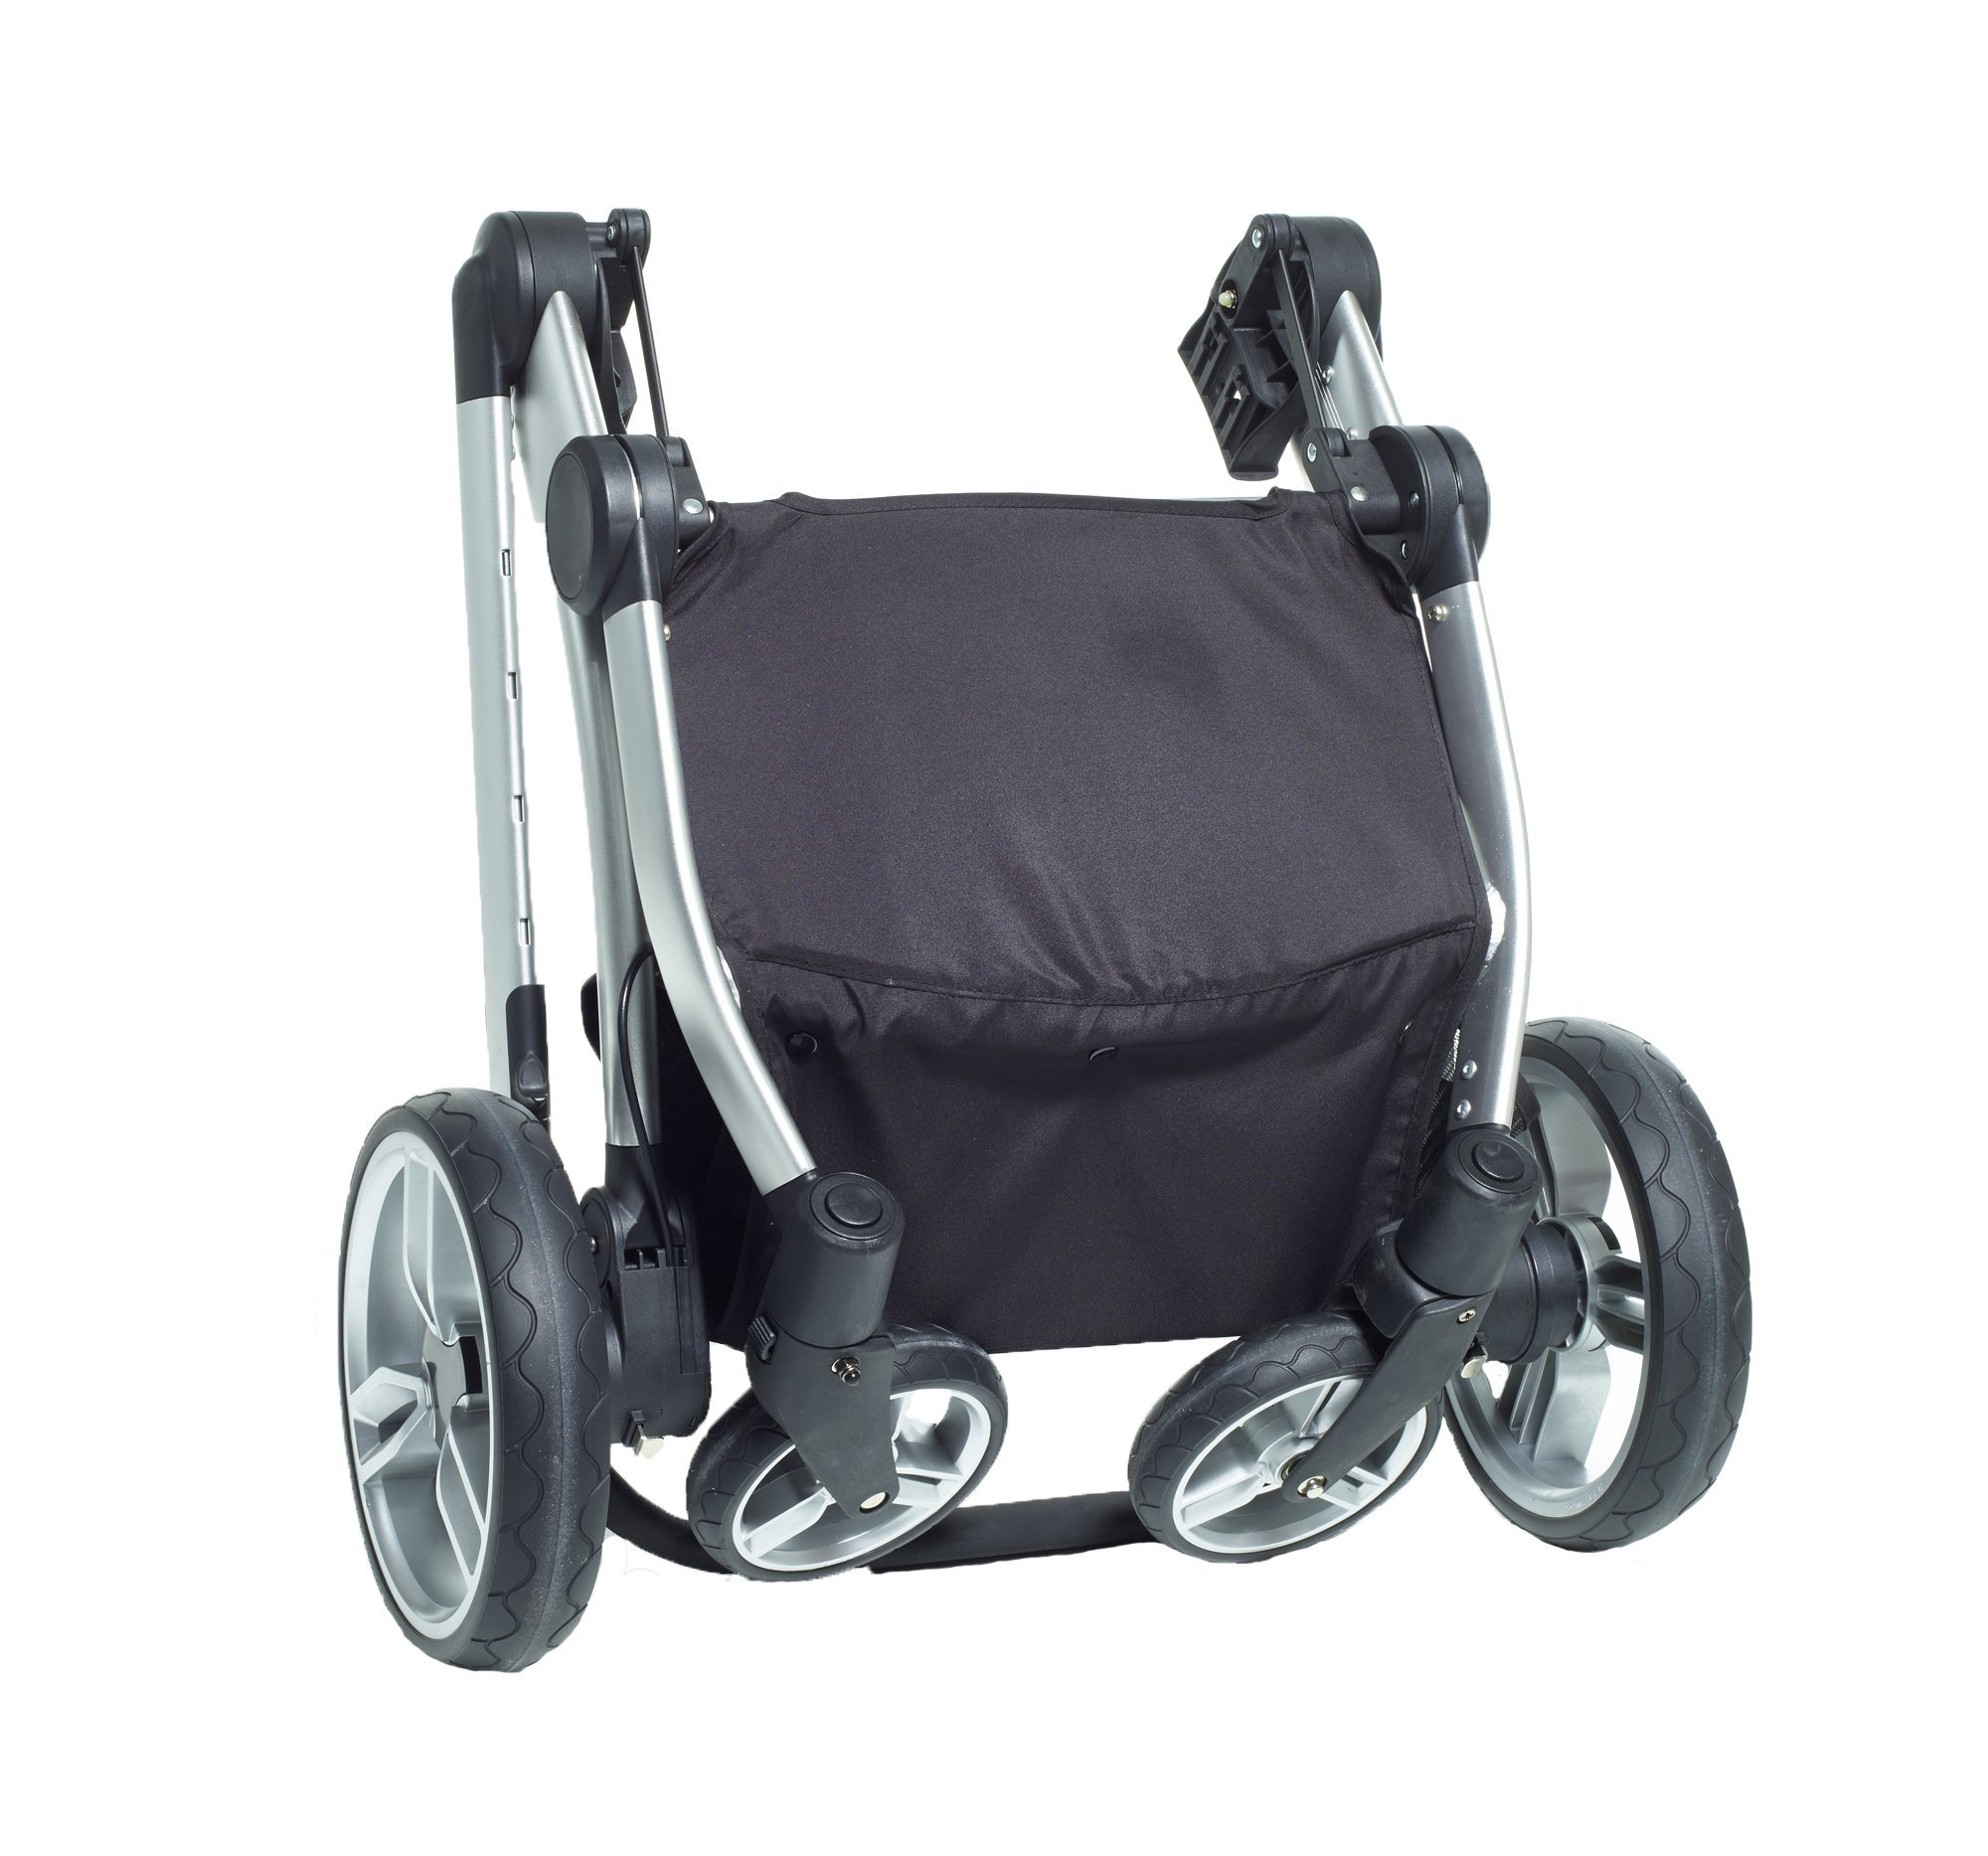 Duellette 21 BS Twin Double Pushchair Stroller Buggy Brand New Colour Range! (Oxford stripe plain bumpers) Kids Kargo Demo video please see link http://youtu.be/Ngj0yD3TMSM Various seat positions. Both seats can face mum (ideal for twins) Suitability Newborn Twins (if used with car seats) or Newborn/toddler. Accommodates 1 or 2 car seats 6